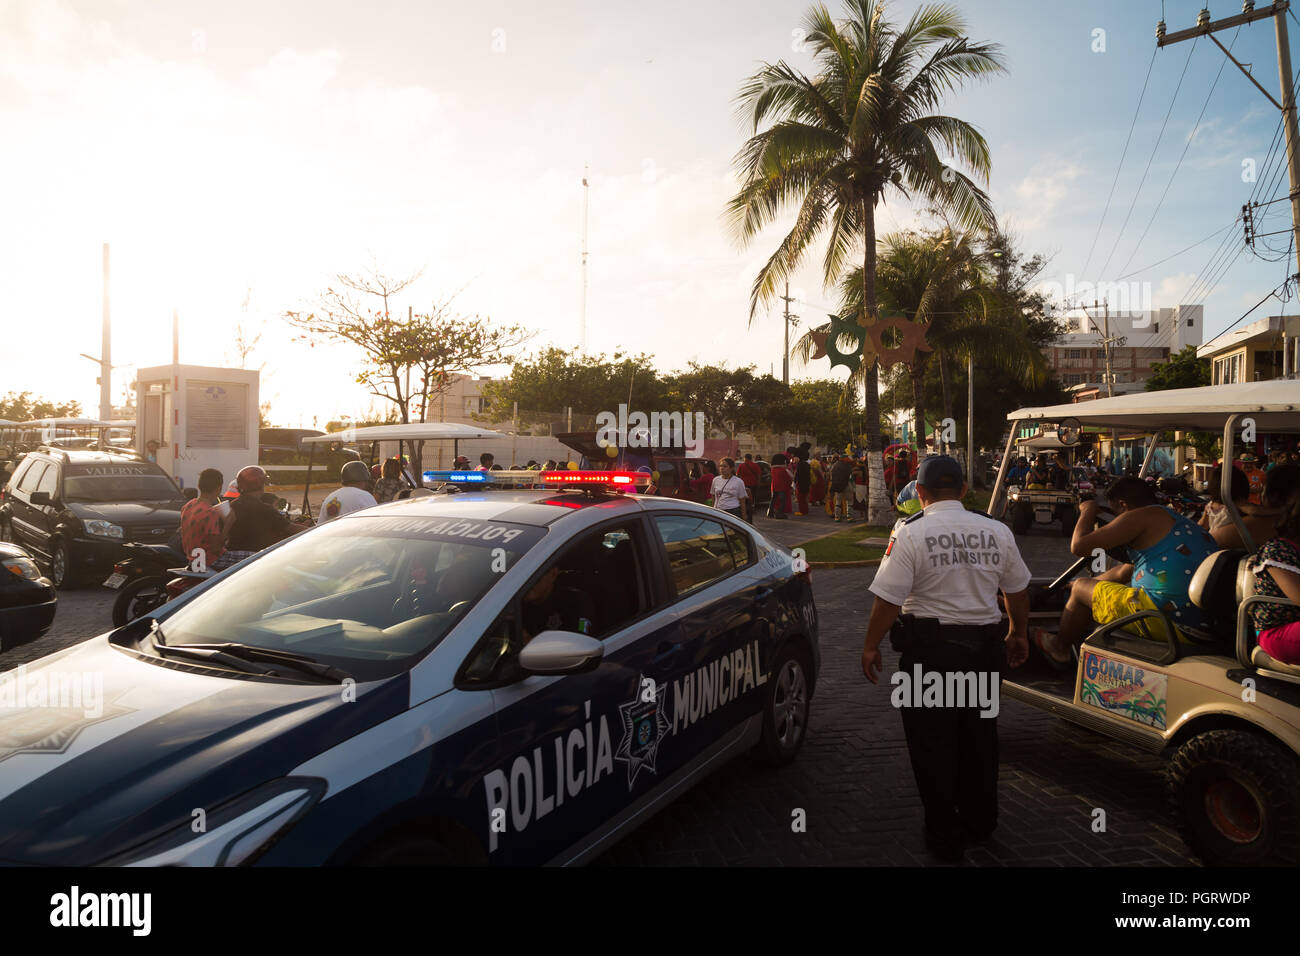 ISLA MUJERES, QR, MEXICO - FEB 11, 2018: Municipal police keep watch over a local festival that was occurring on Isla Mujeres. - Stock Image